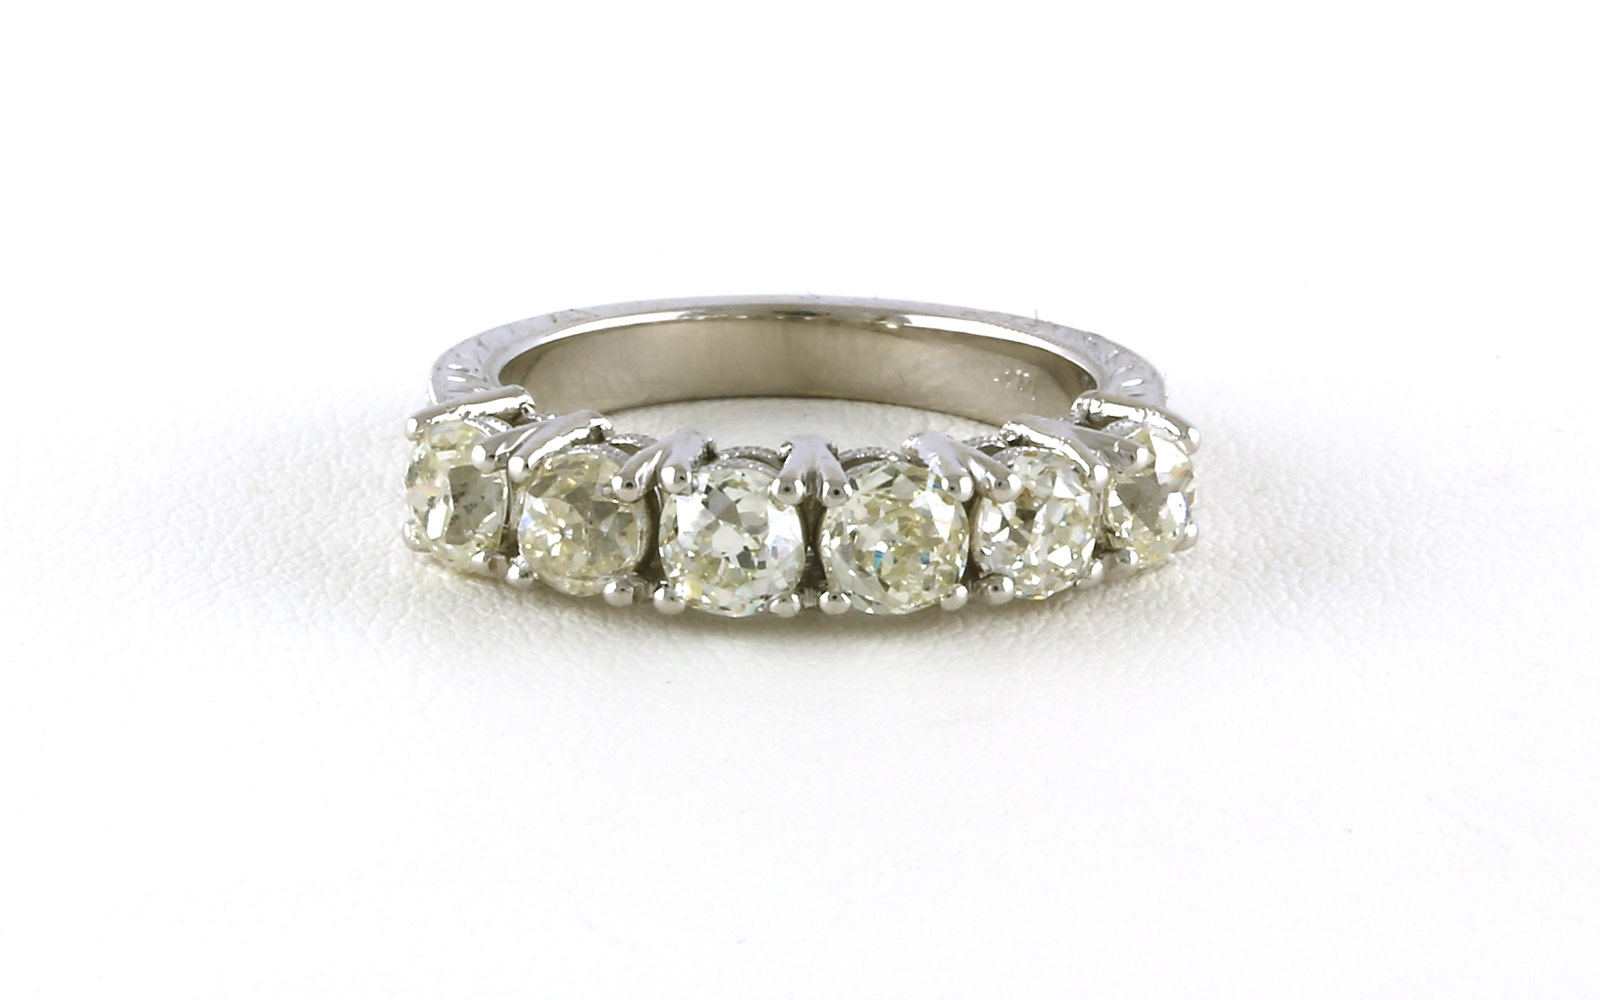 Estate Piece: 6 Stone Antique Style Diamond Ring With Engraving Pertaining To Latest Antique Style Diamond Engagement Rings (Gallery 11 of 15)